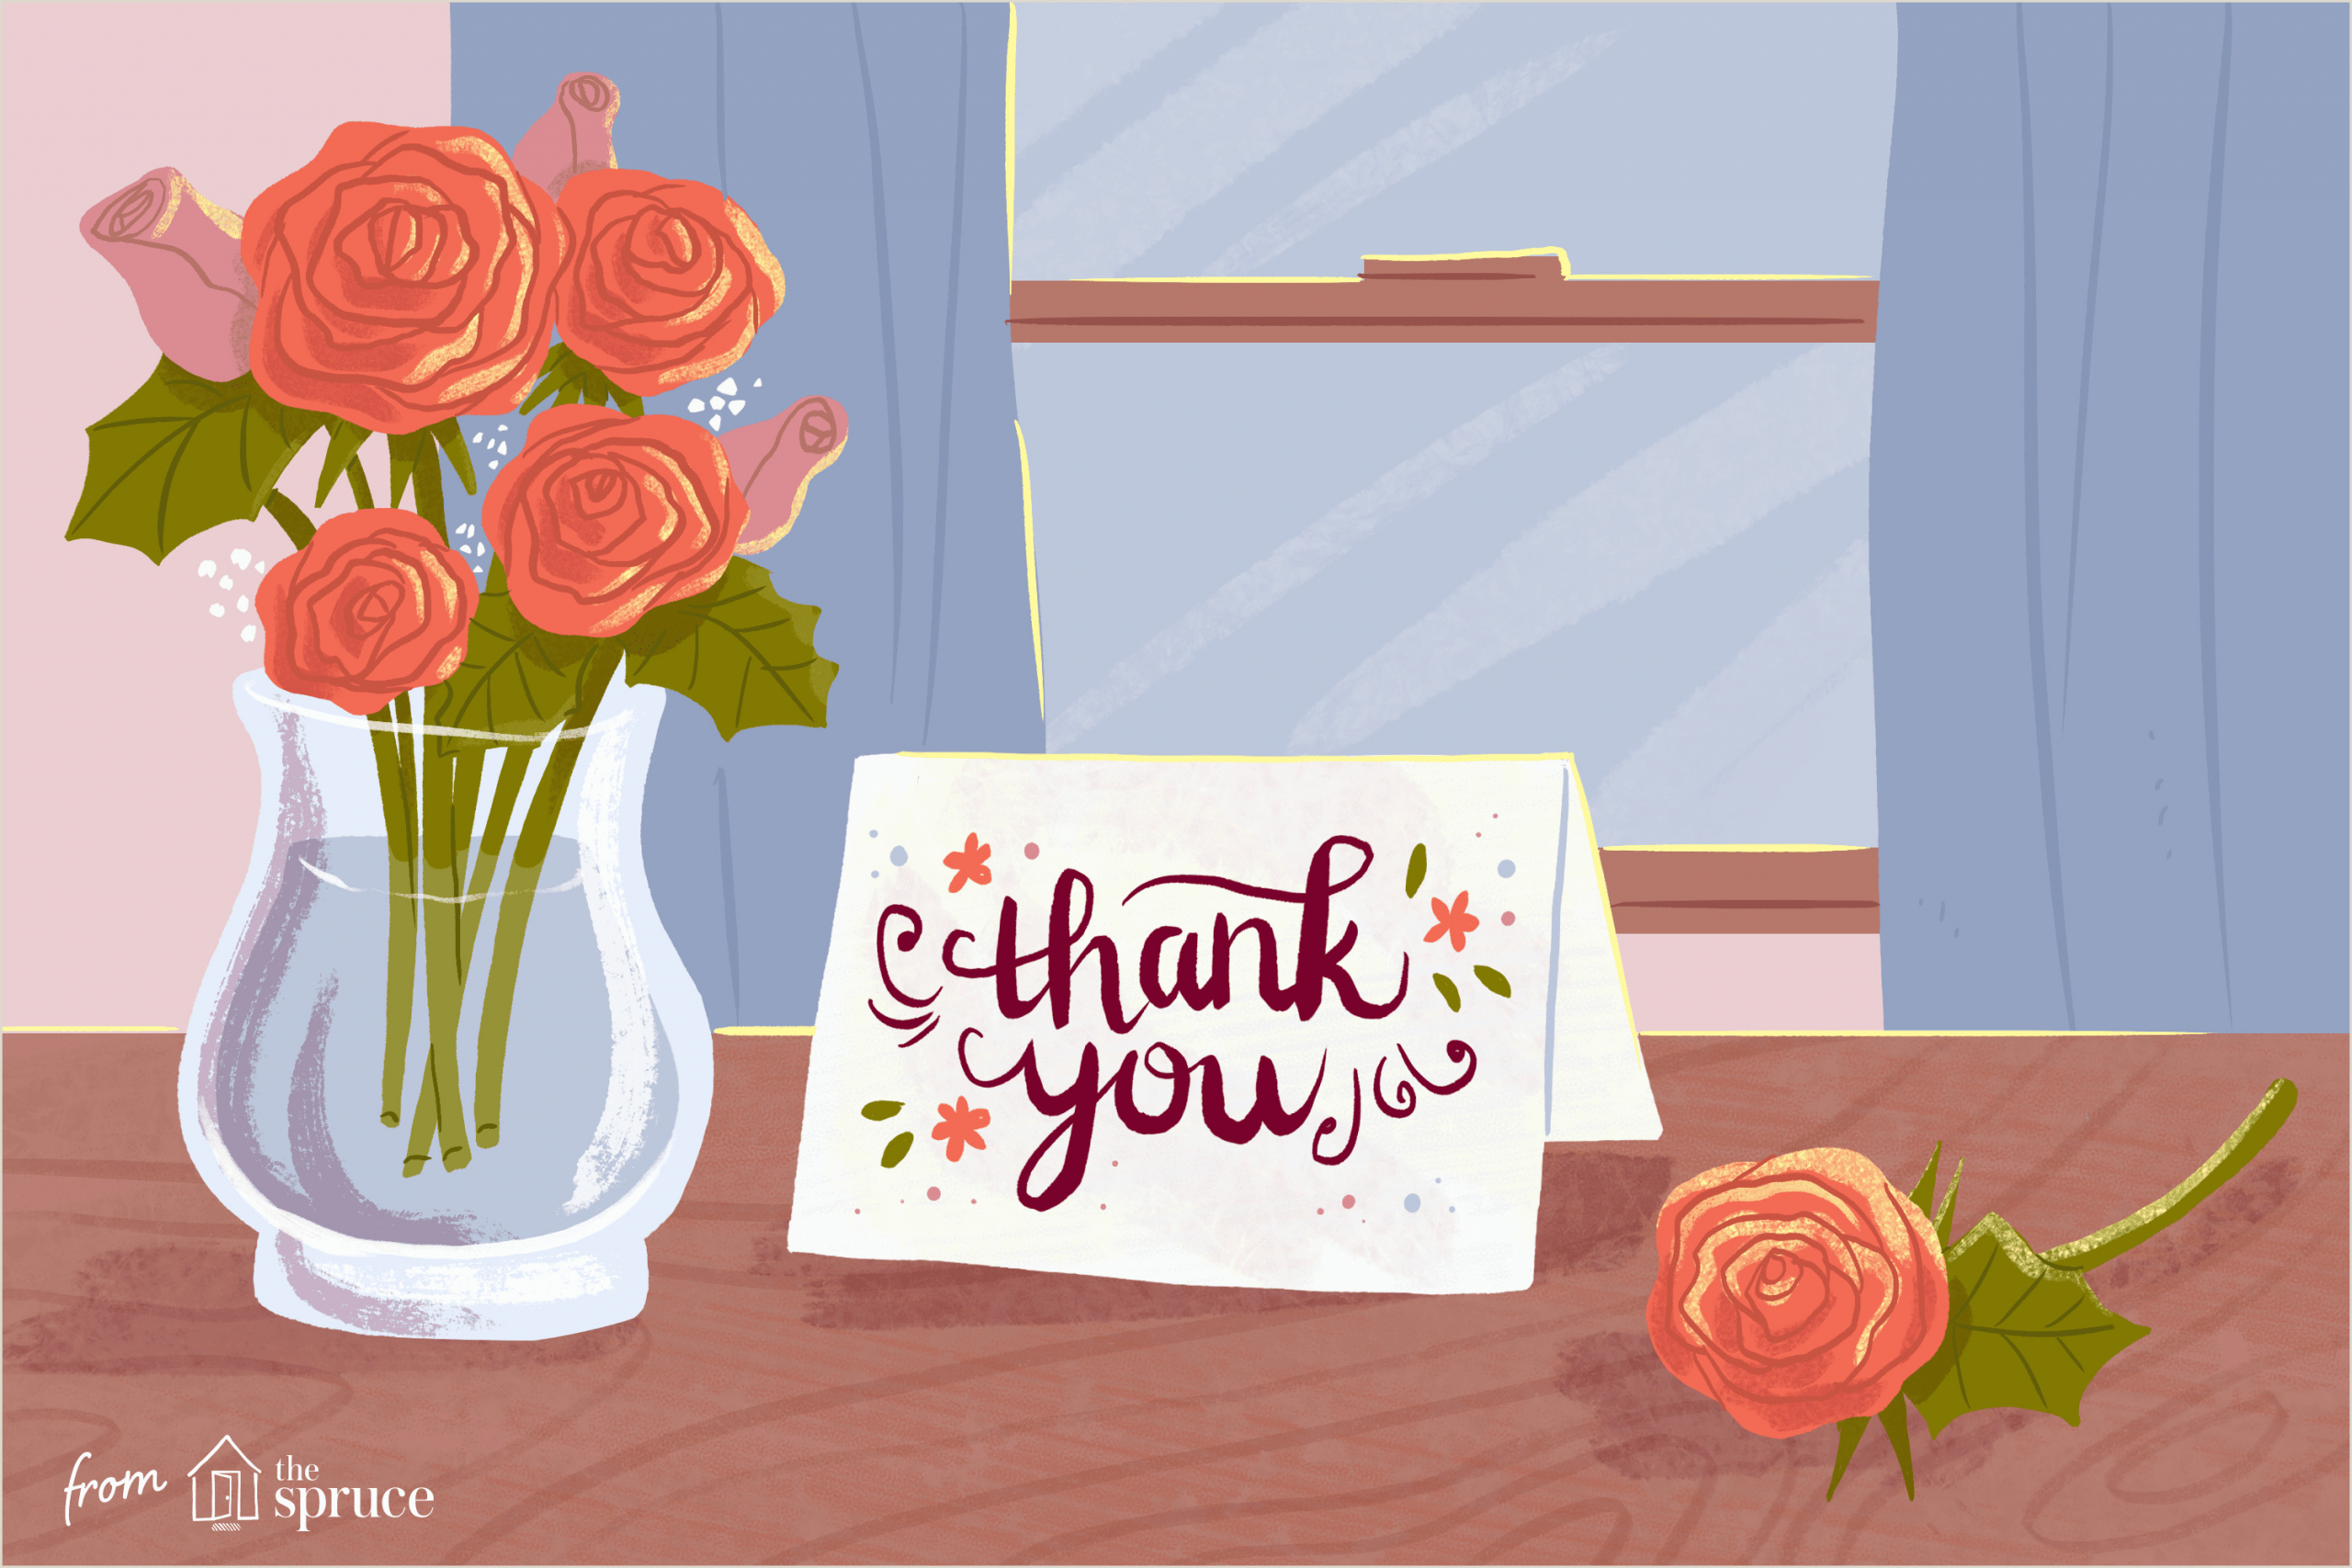 Unique Girly Business Cards With No Eriting 11 Free Printable Thank You Cards With Lots Of Style